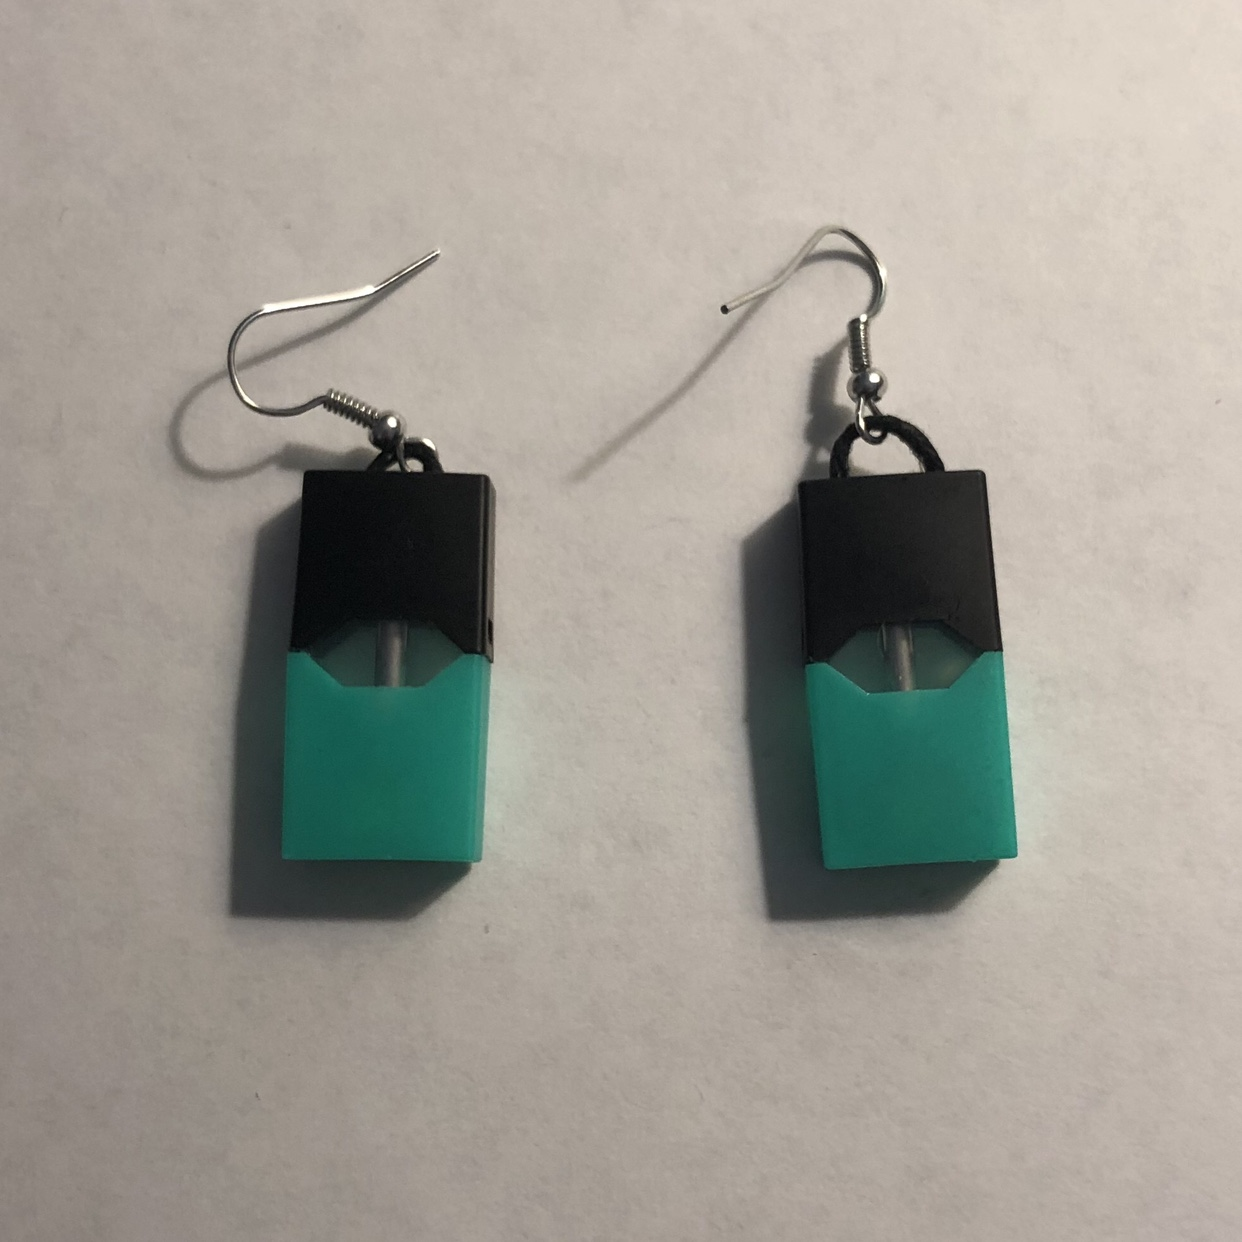 juul pod earrings •do i need to say more these are    - Depop